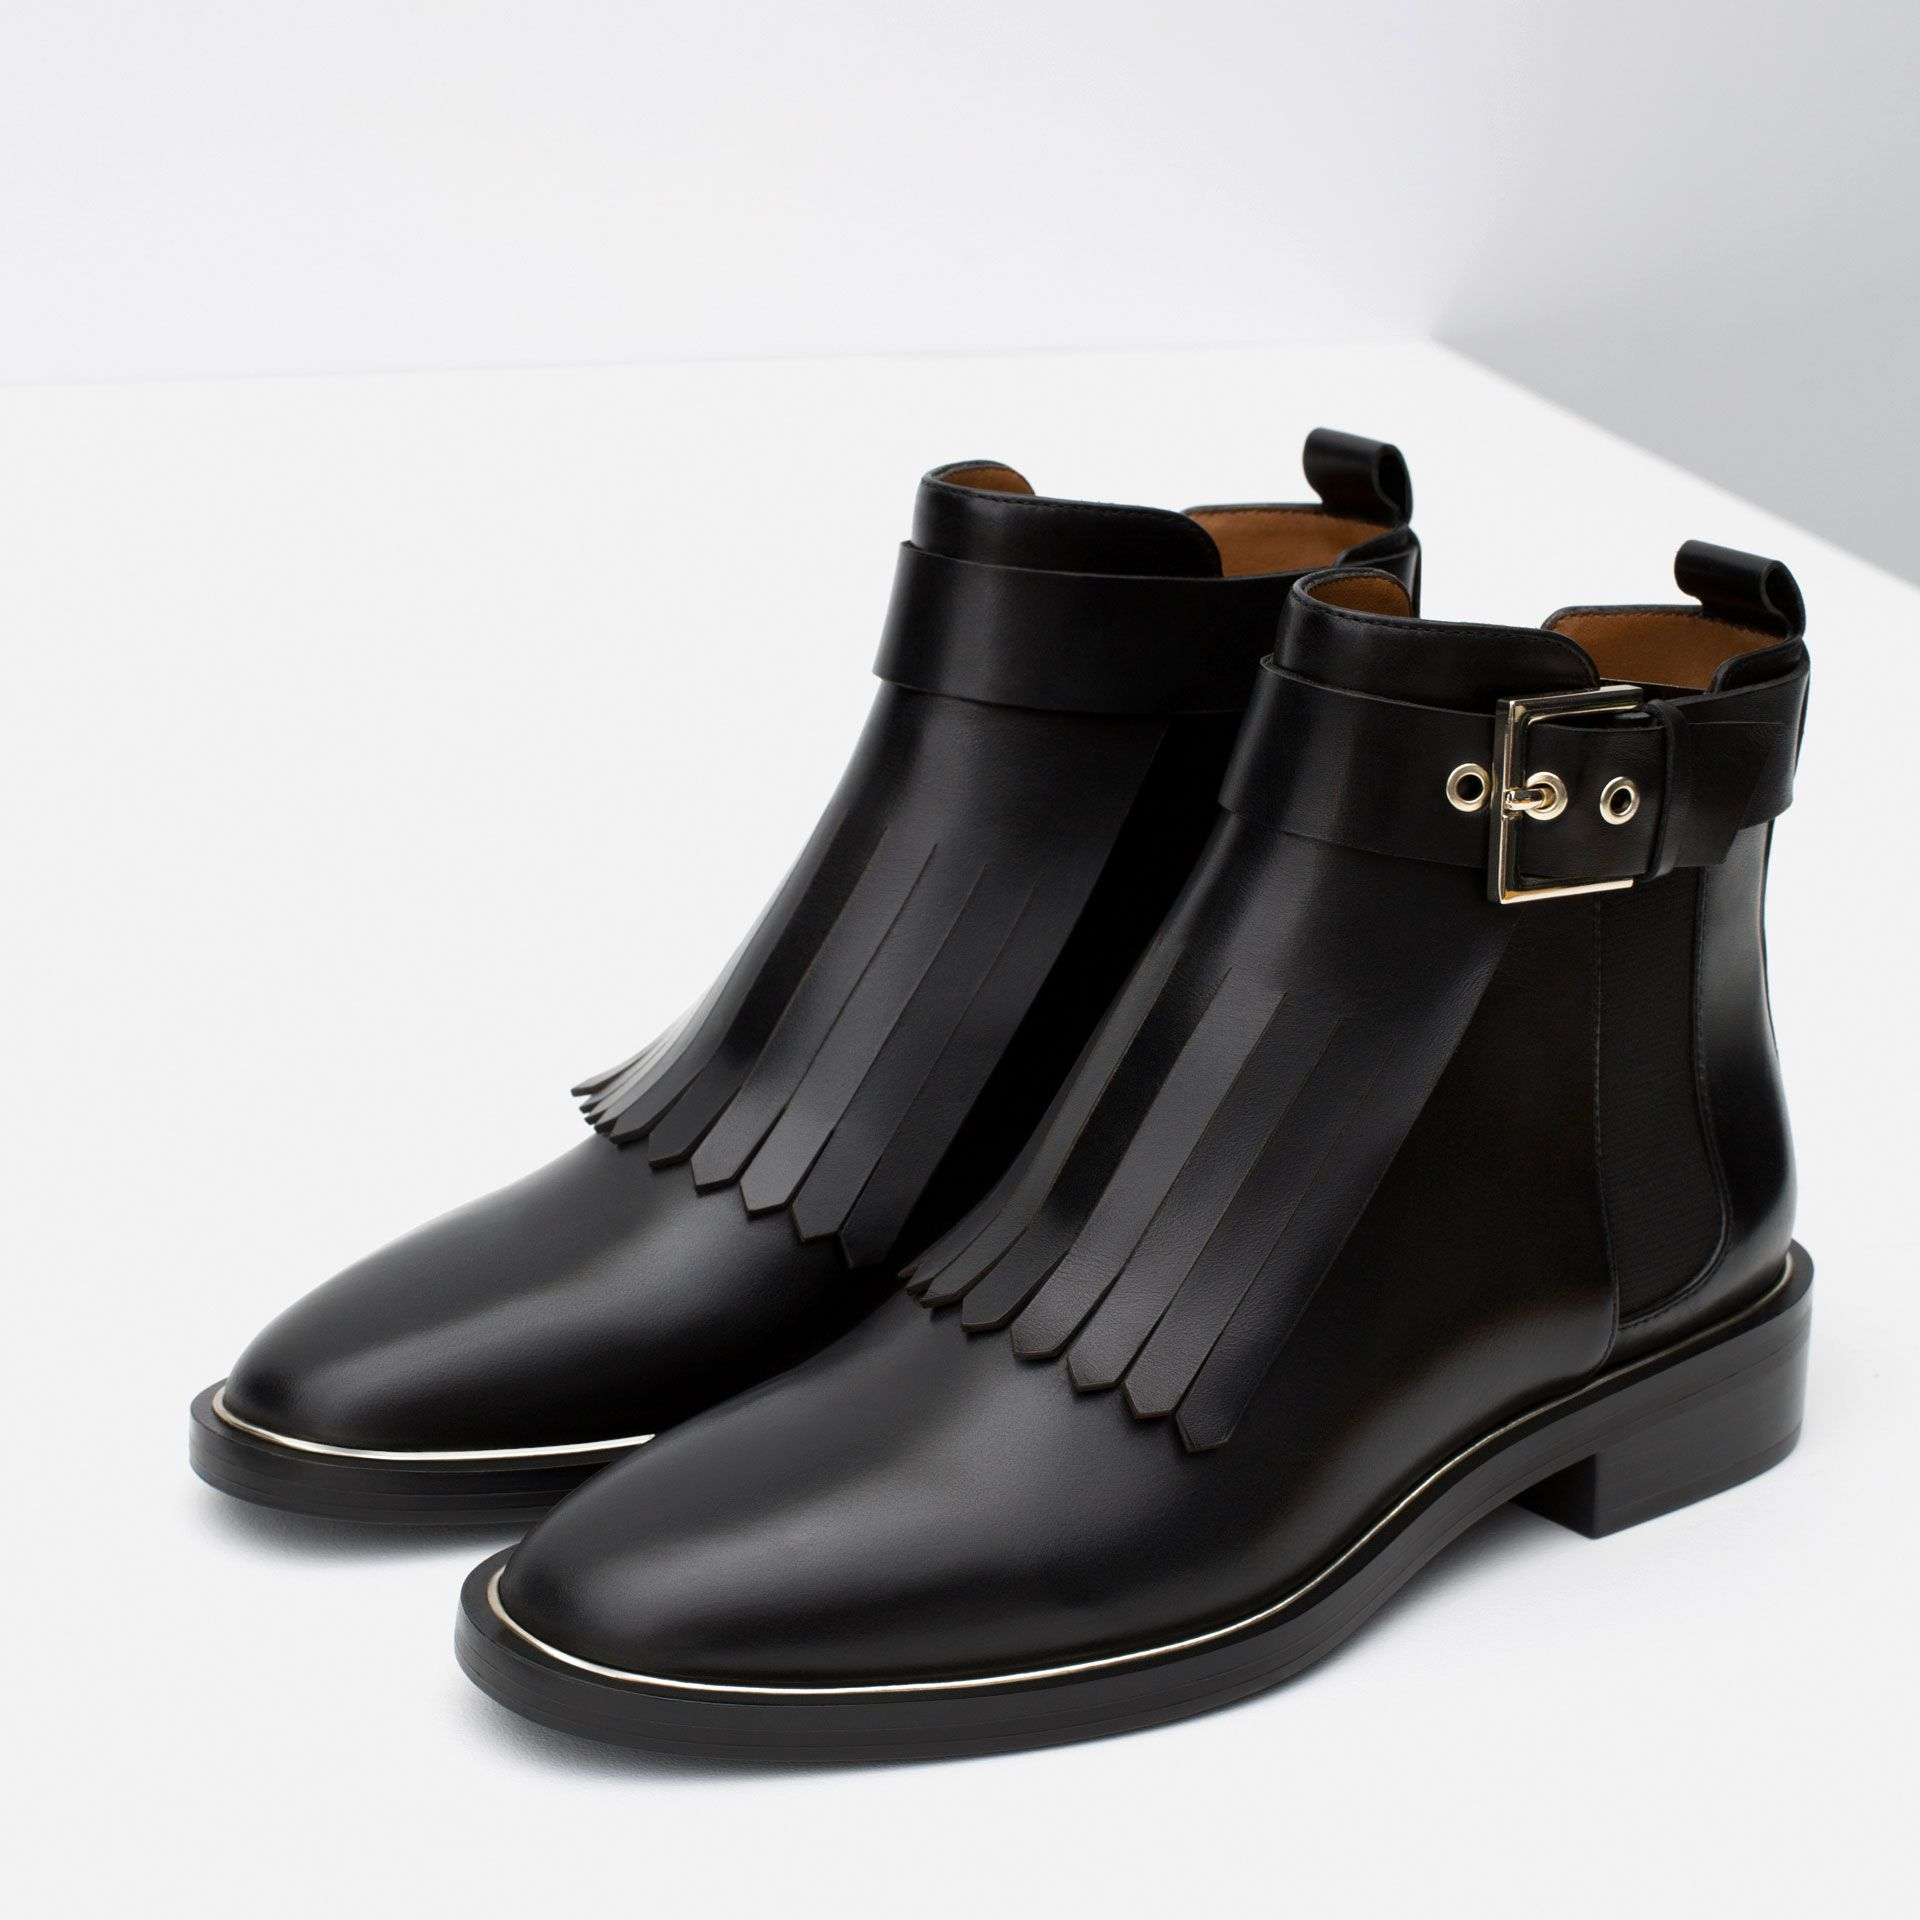 bottines en cuir et À franges chaussures femme collection aw15 zara france